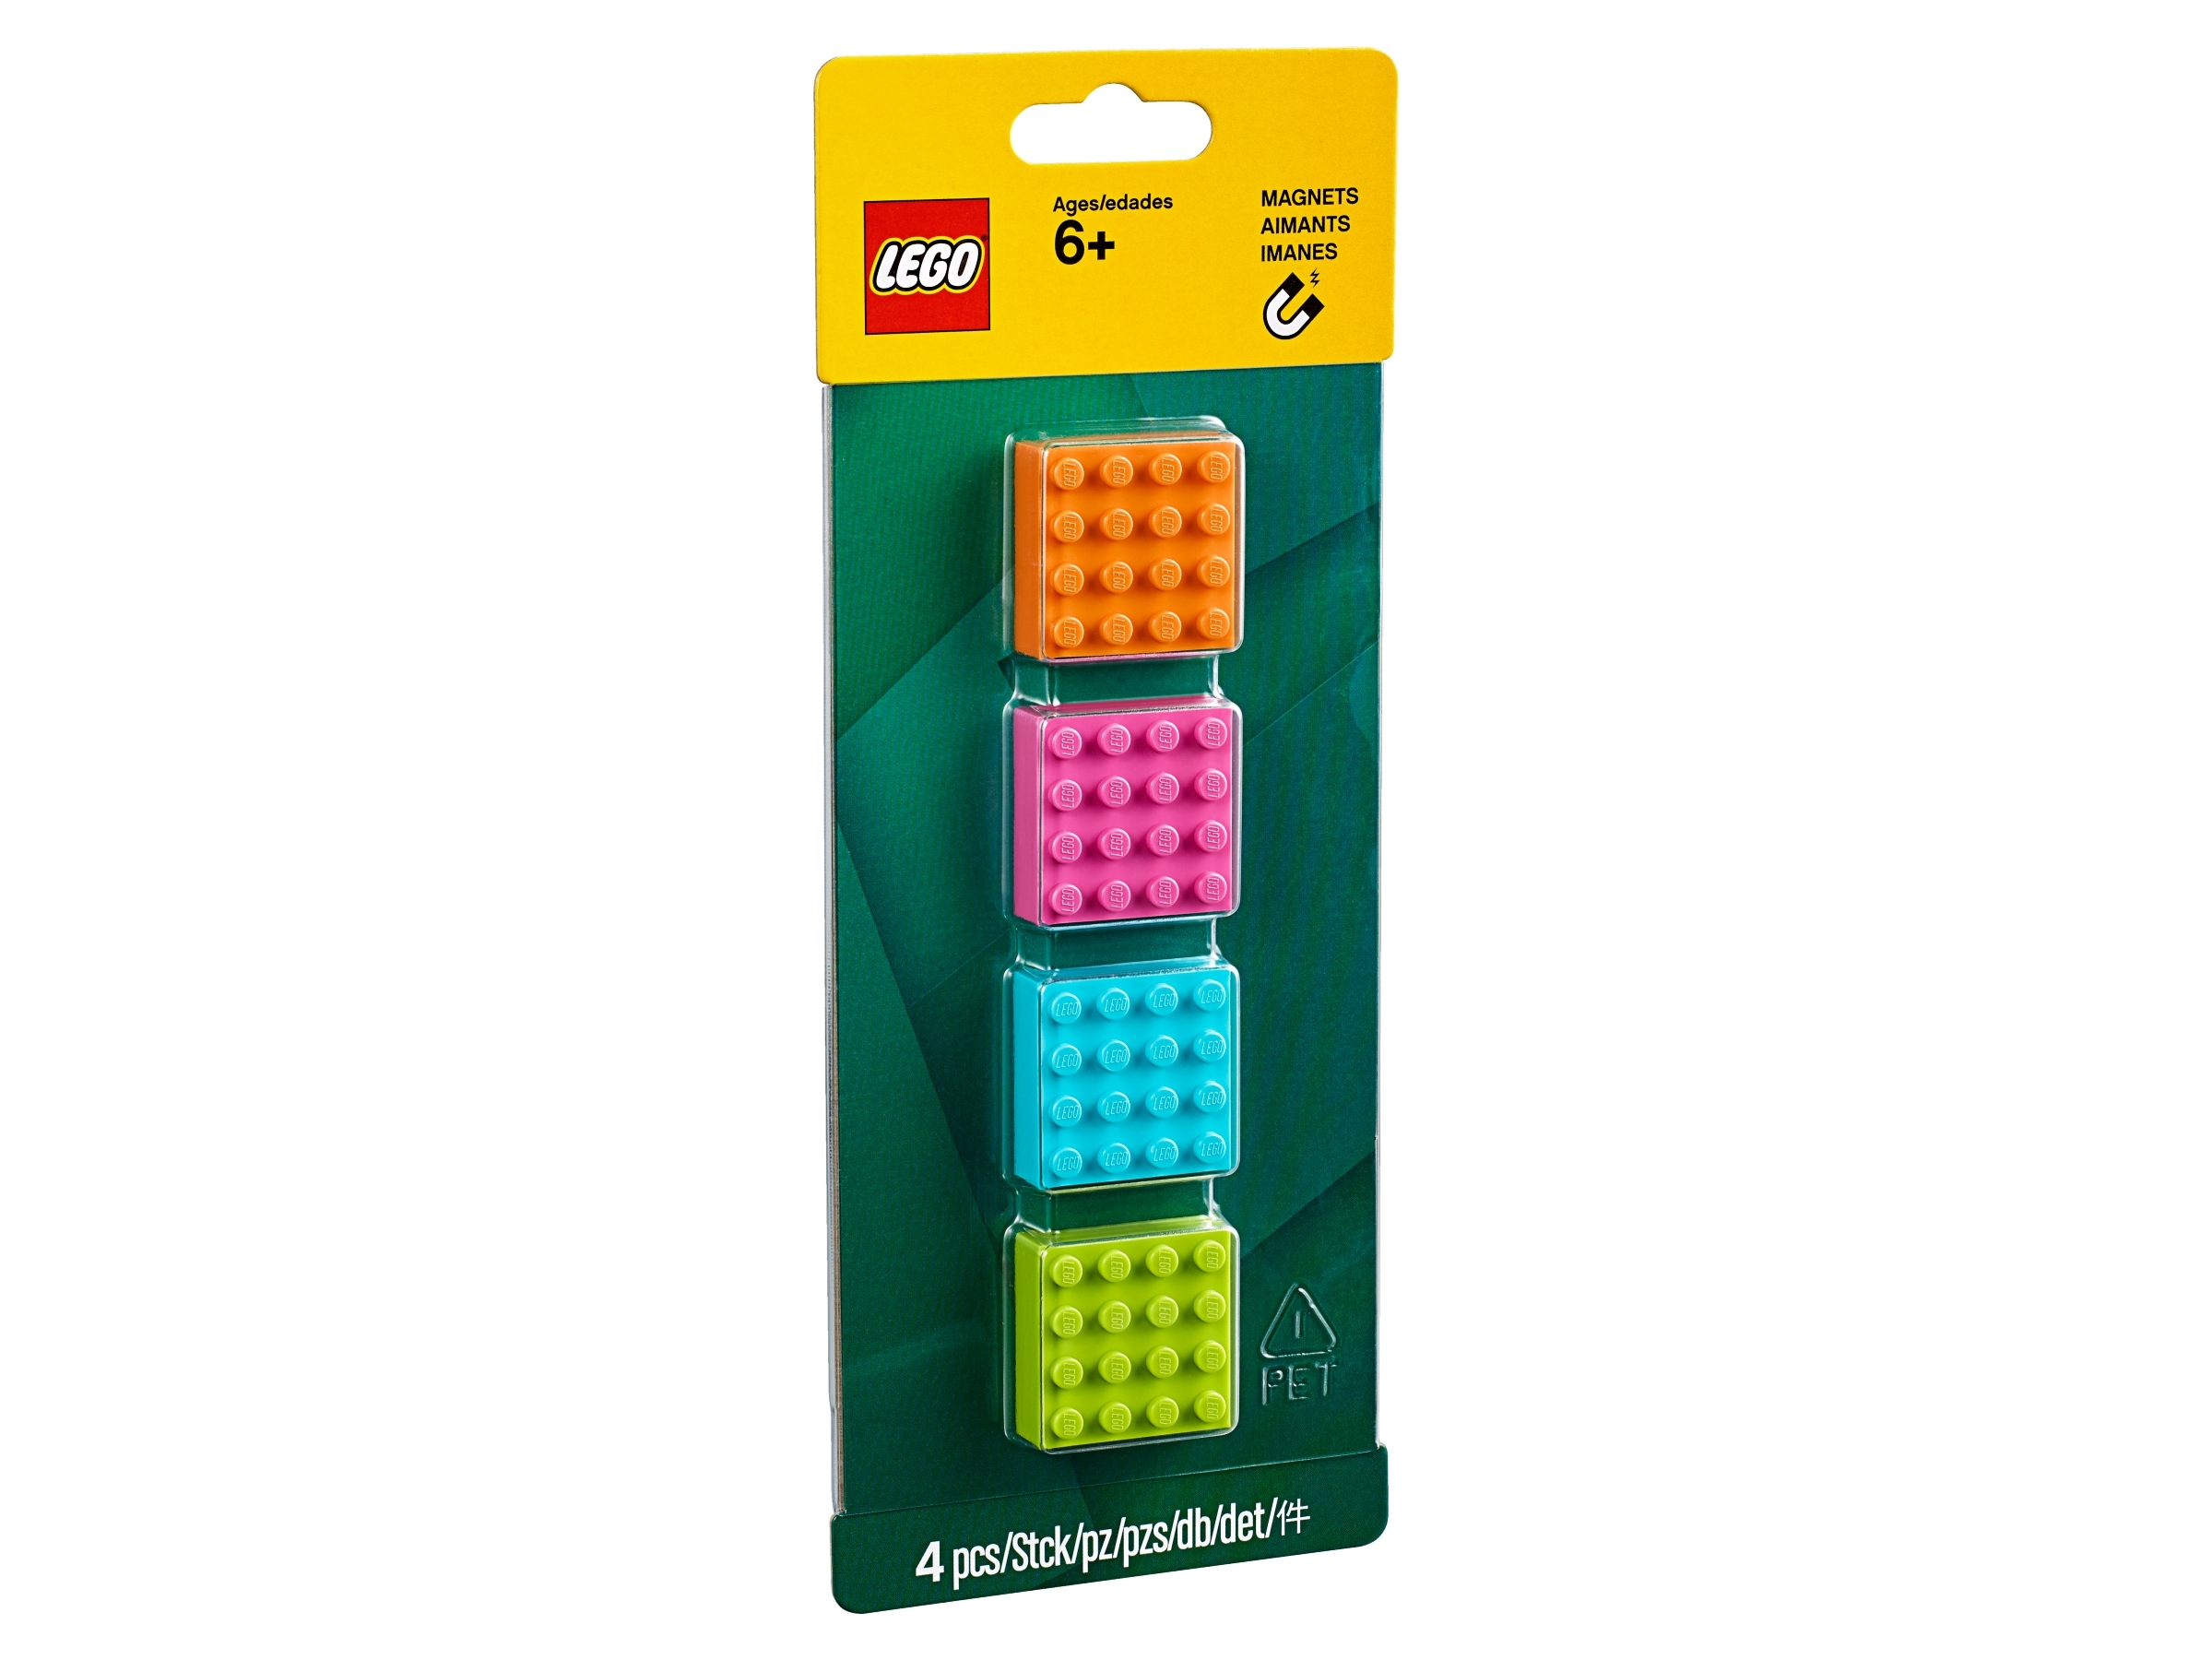 Lego 4x4 Brick Magnets 853900 Miscellaneous Buy Online At The Official Lego Shop It